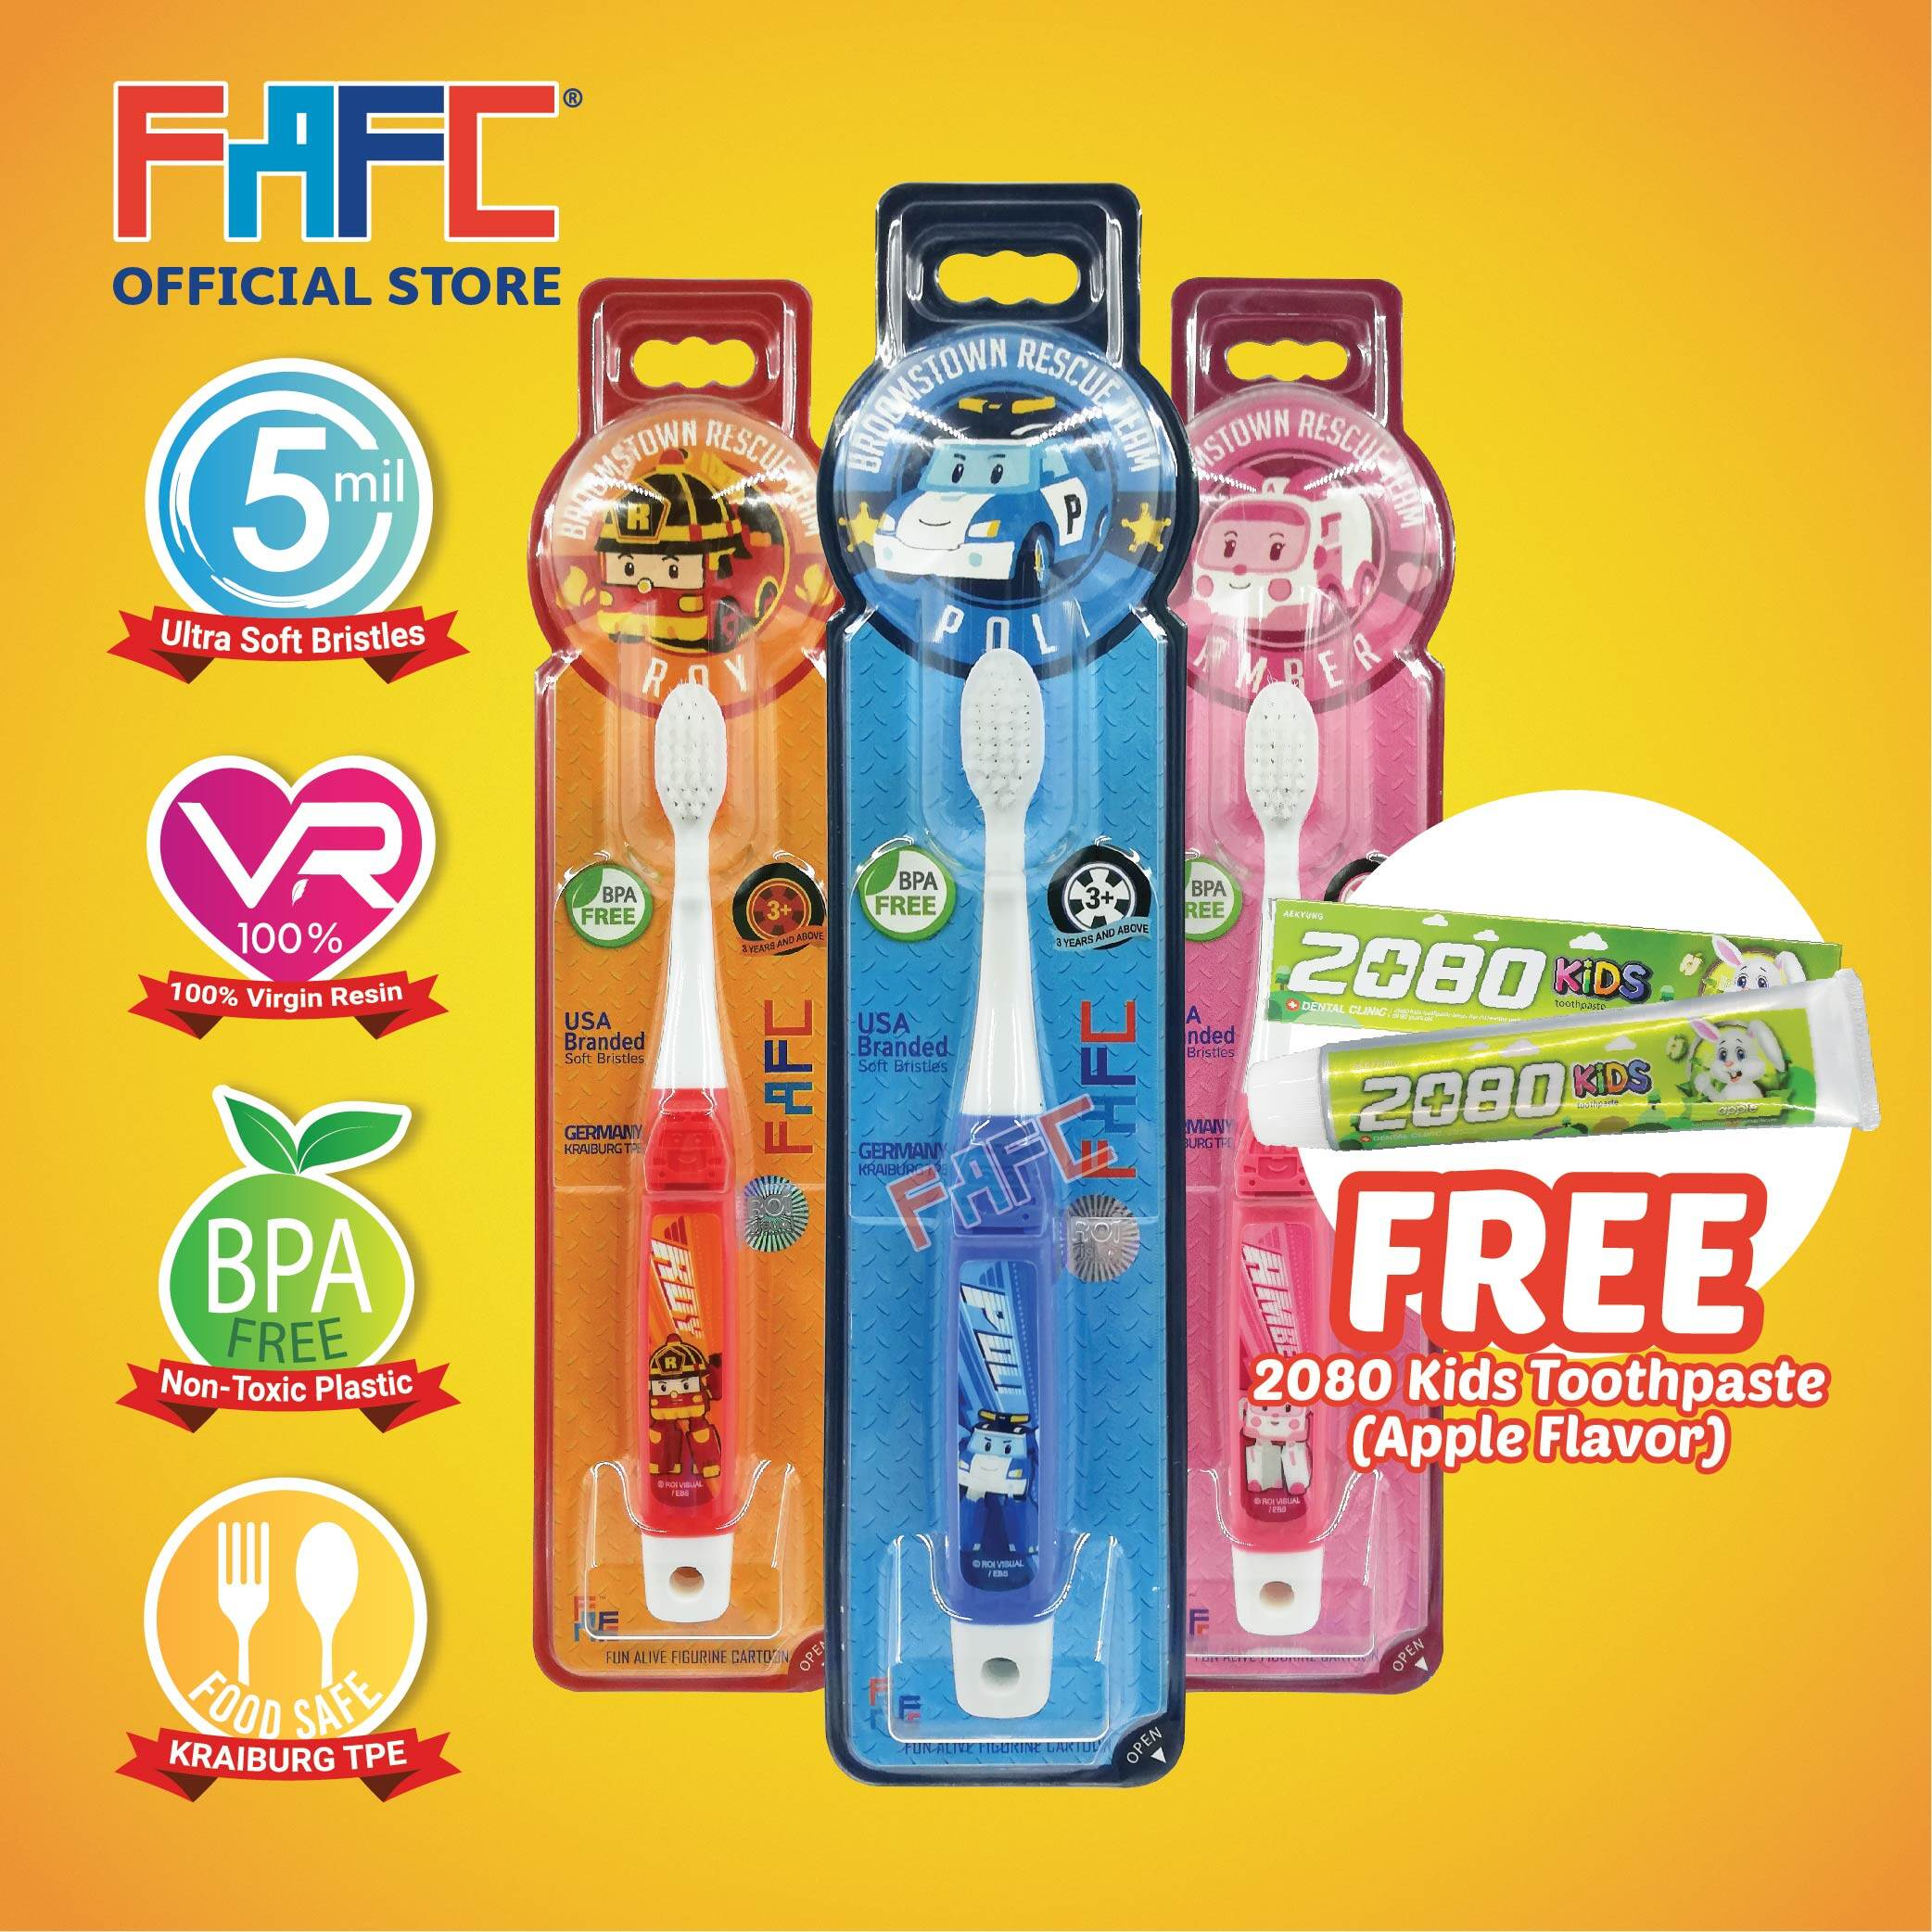 POLI AMBER ROY - (3 Pcs) FAFC Robocar Poli Hook Kids Toothbrush FREE 2080 Kids Toothpaste (Apple Flavor)